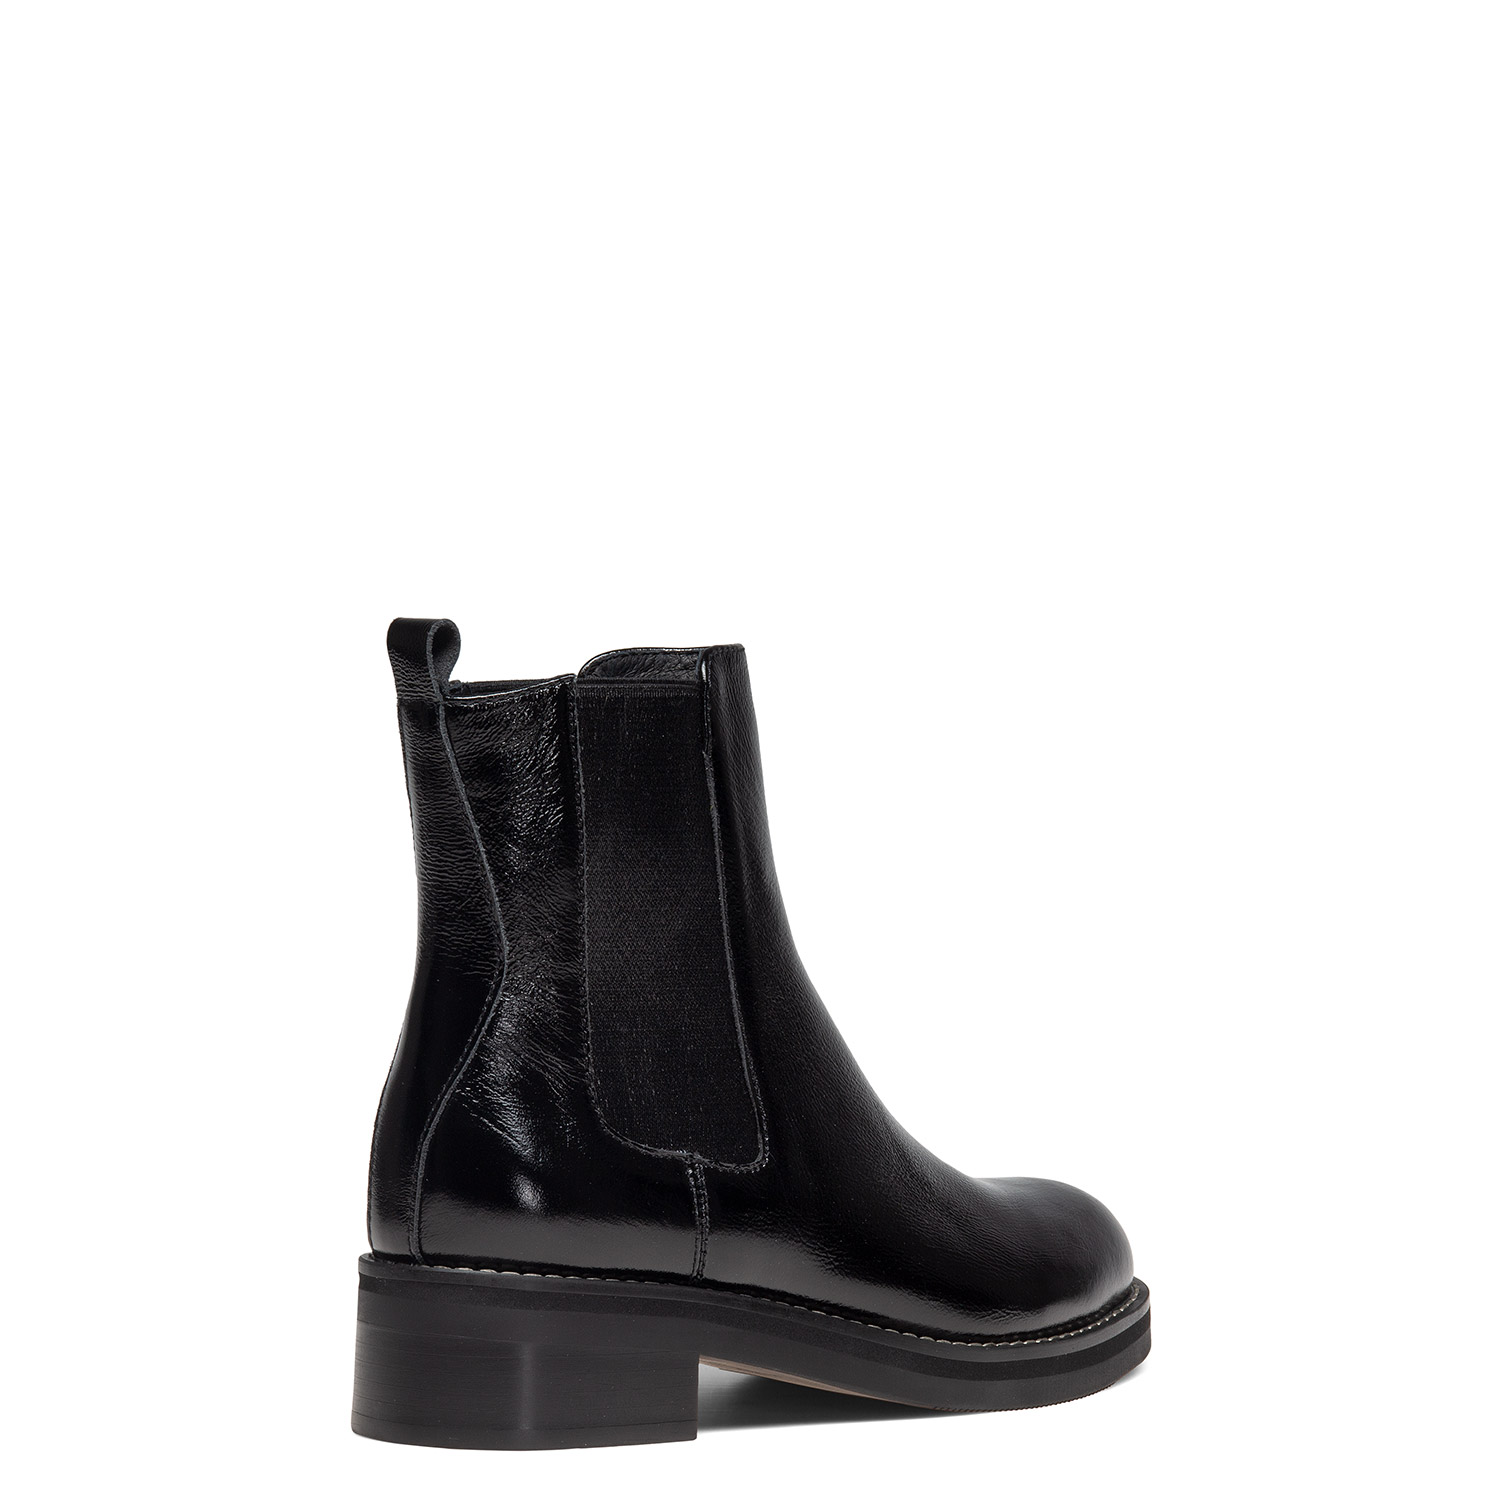 Women's ankle boots PAZOLINI JH-ILM5-1